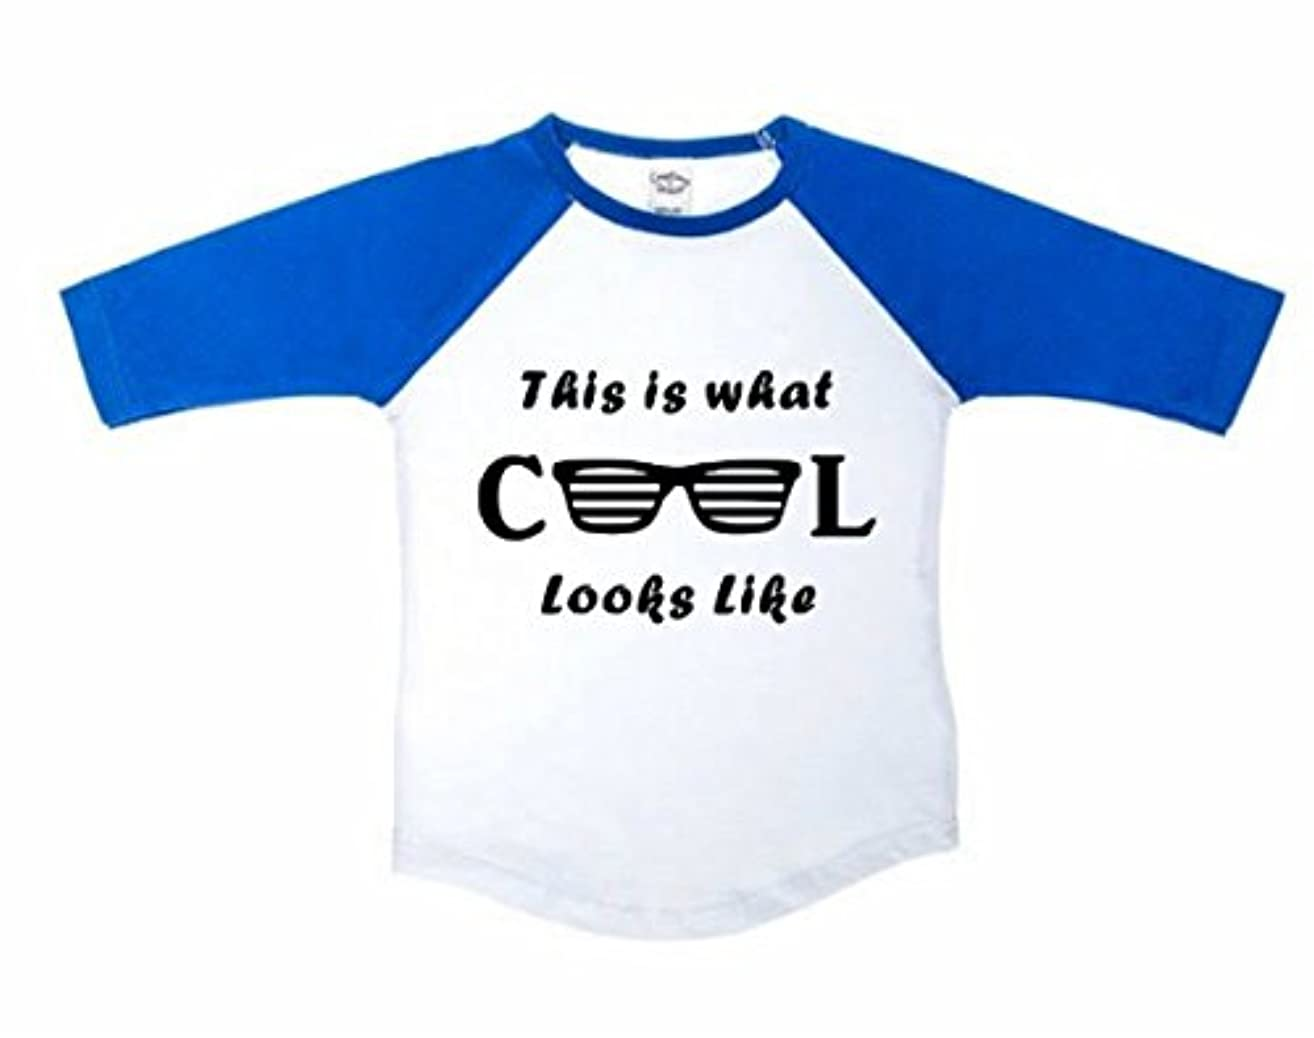 This is what Cool Looks like with Sunglasses Baseball Tee, Funny Toddler Shirt, Unisex boy or girl shirt